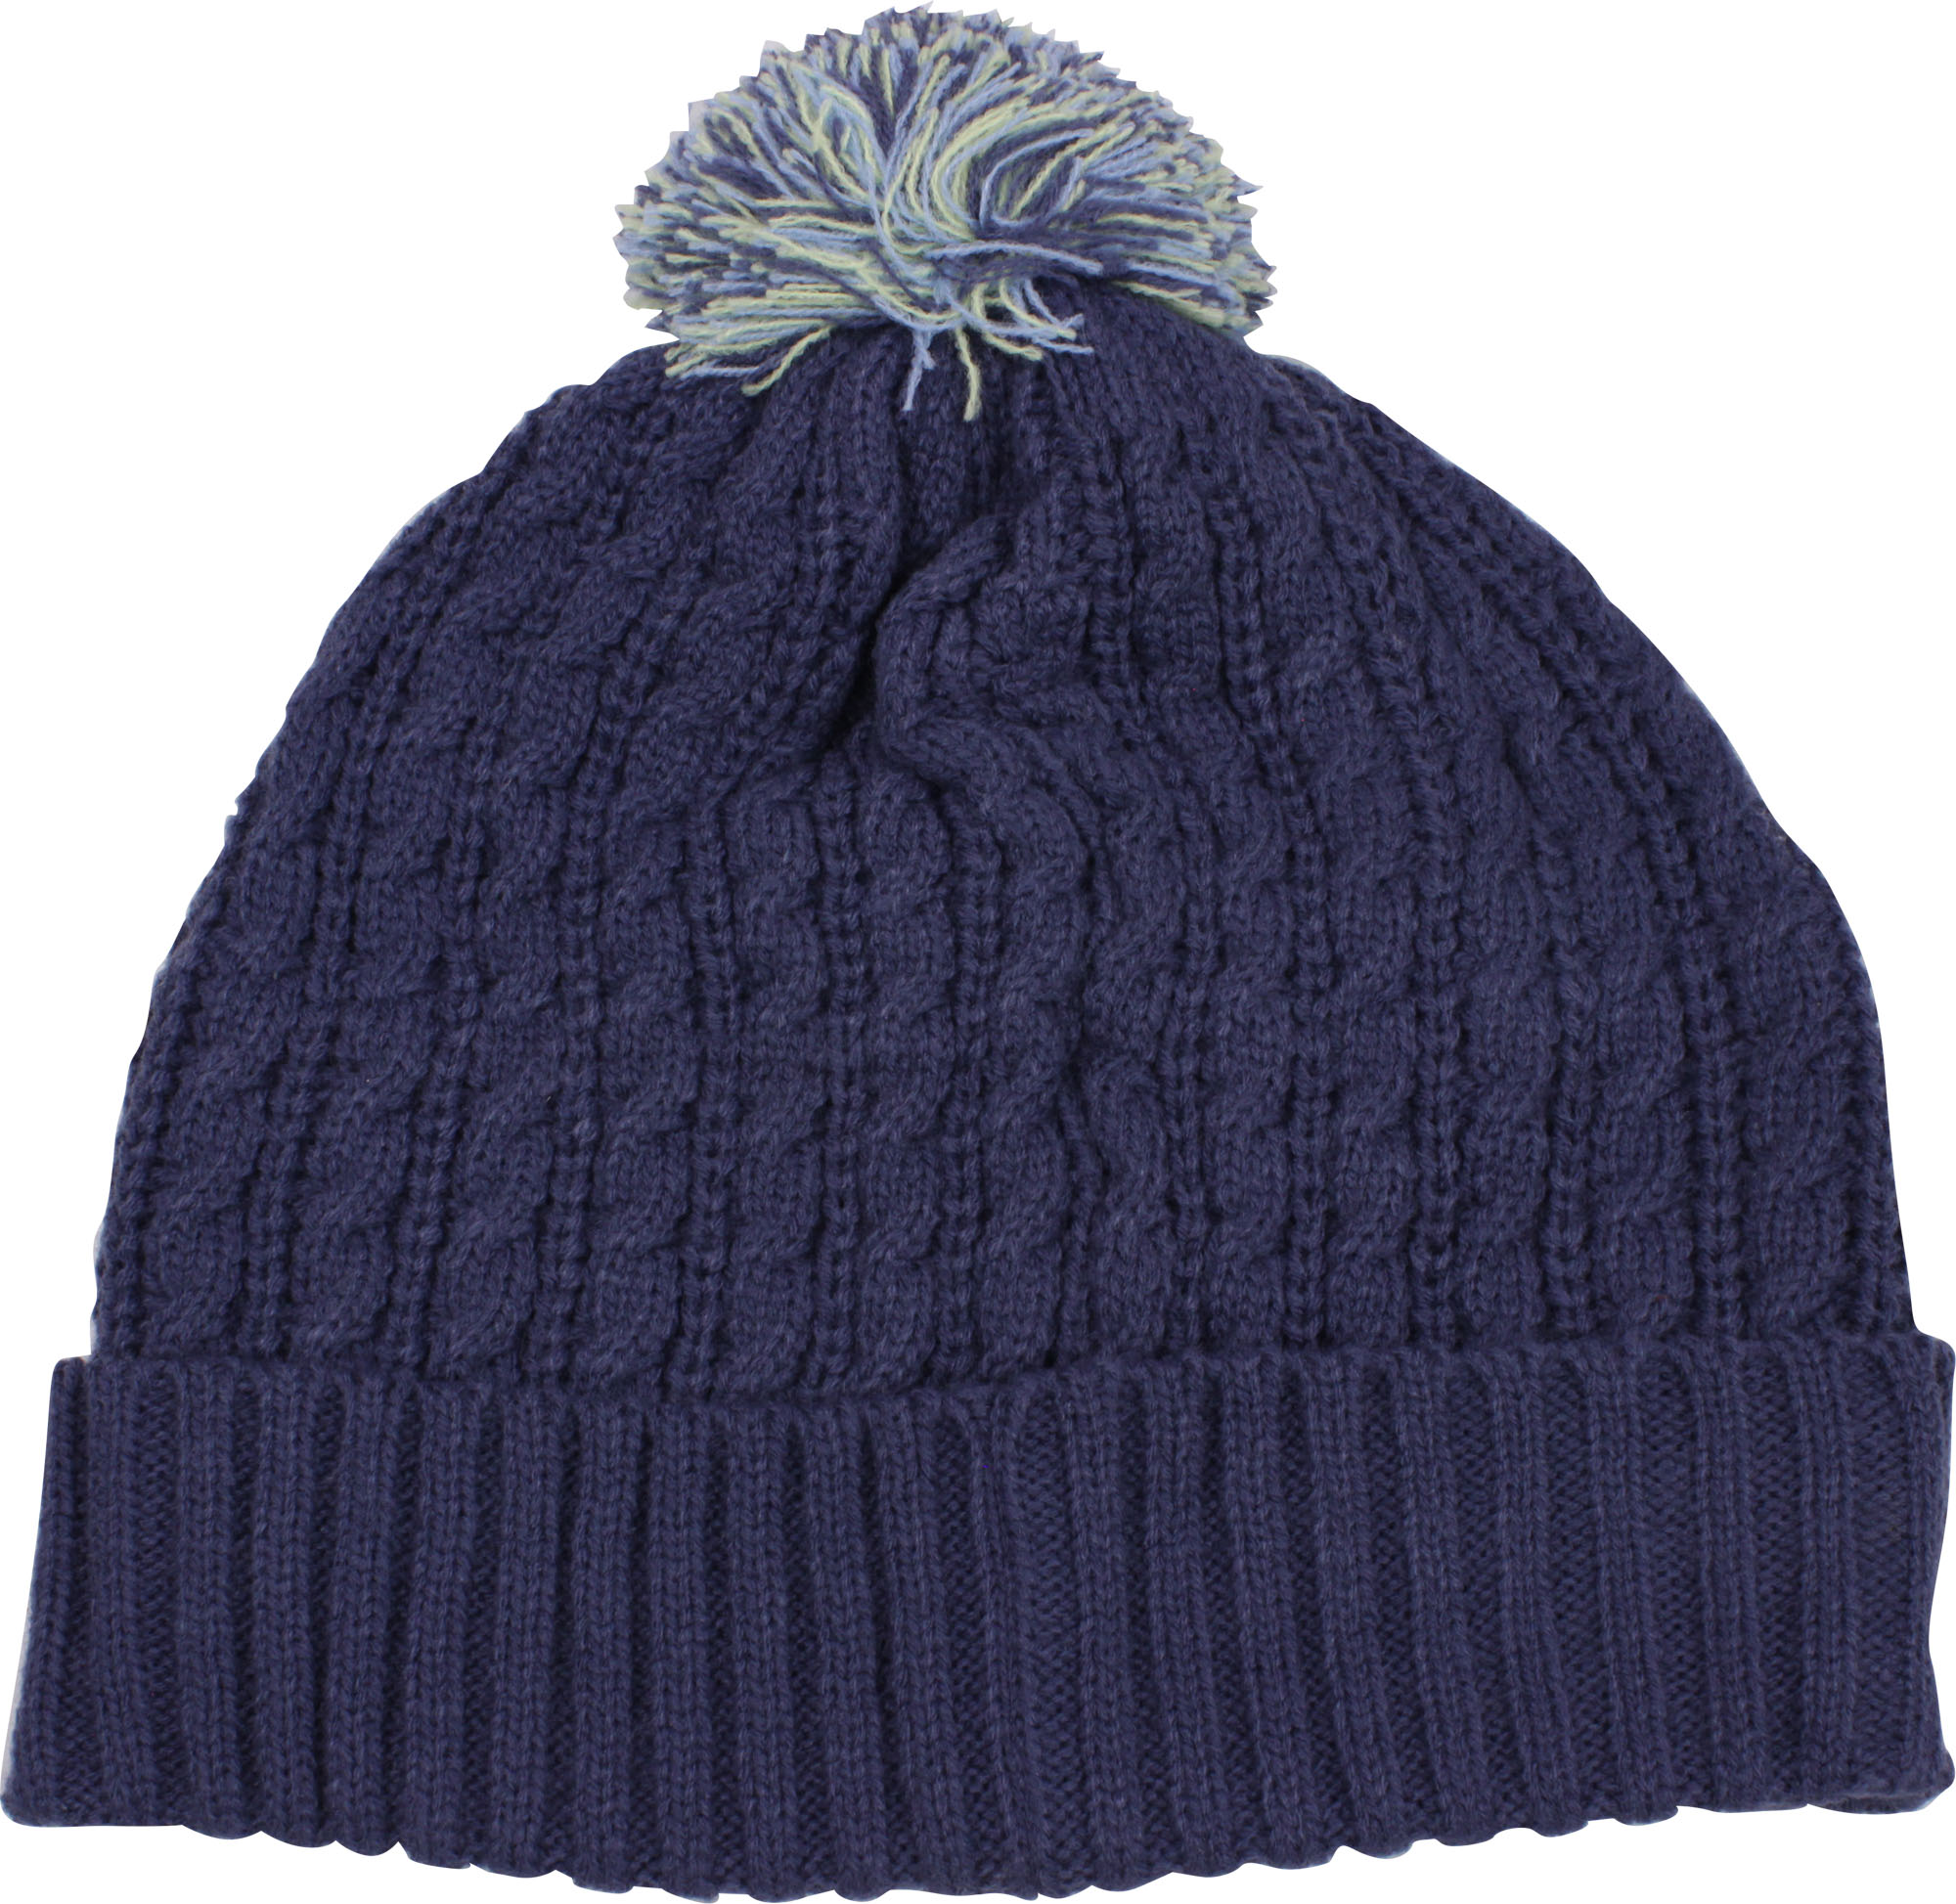 9185edd11 Roxy Womens Fjord Beanie - Crown Blue 191274582108 | eBay